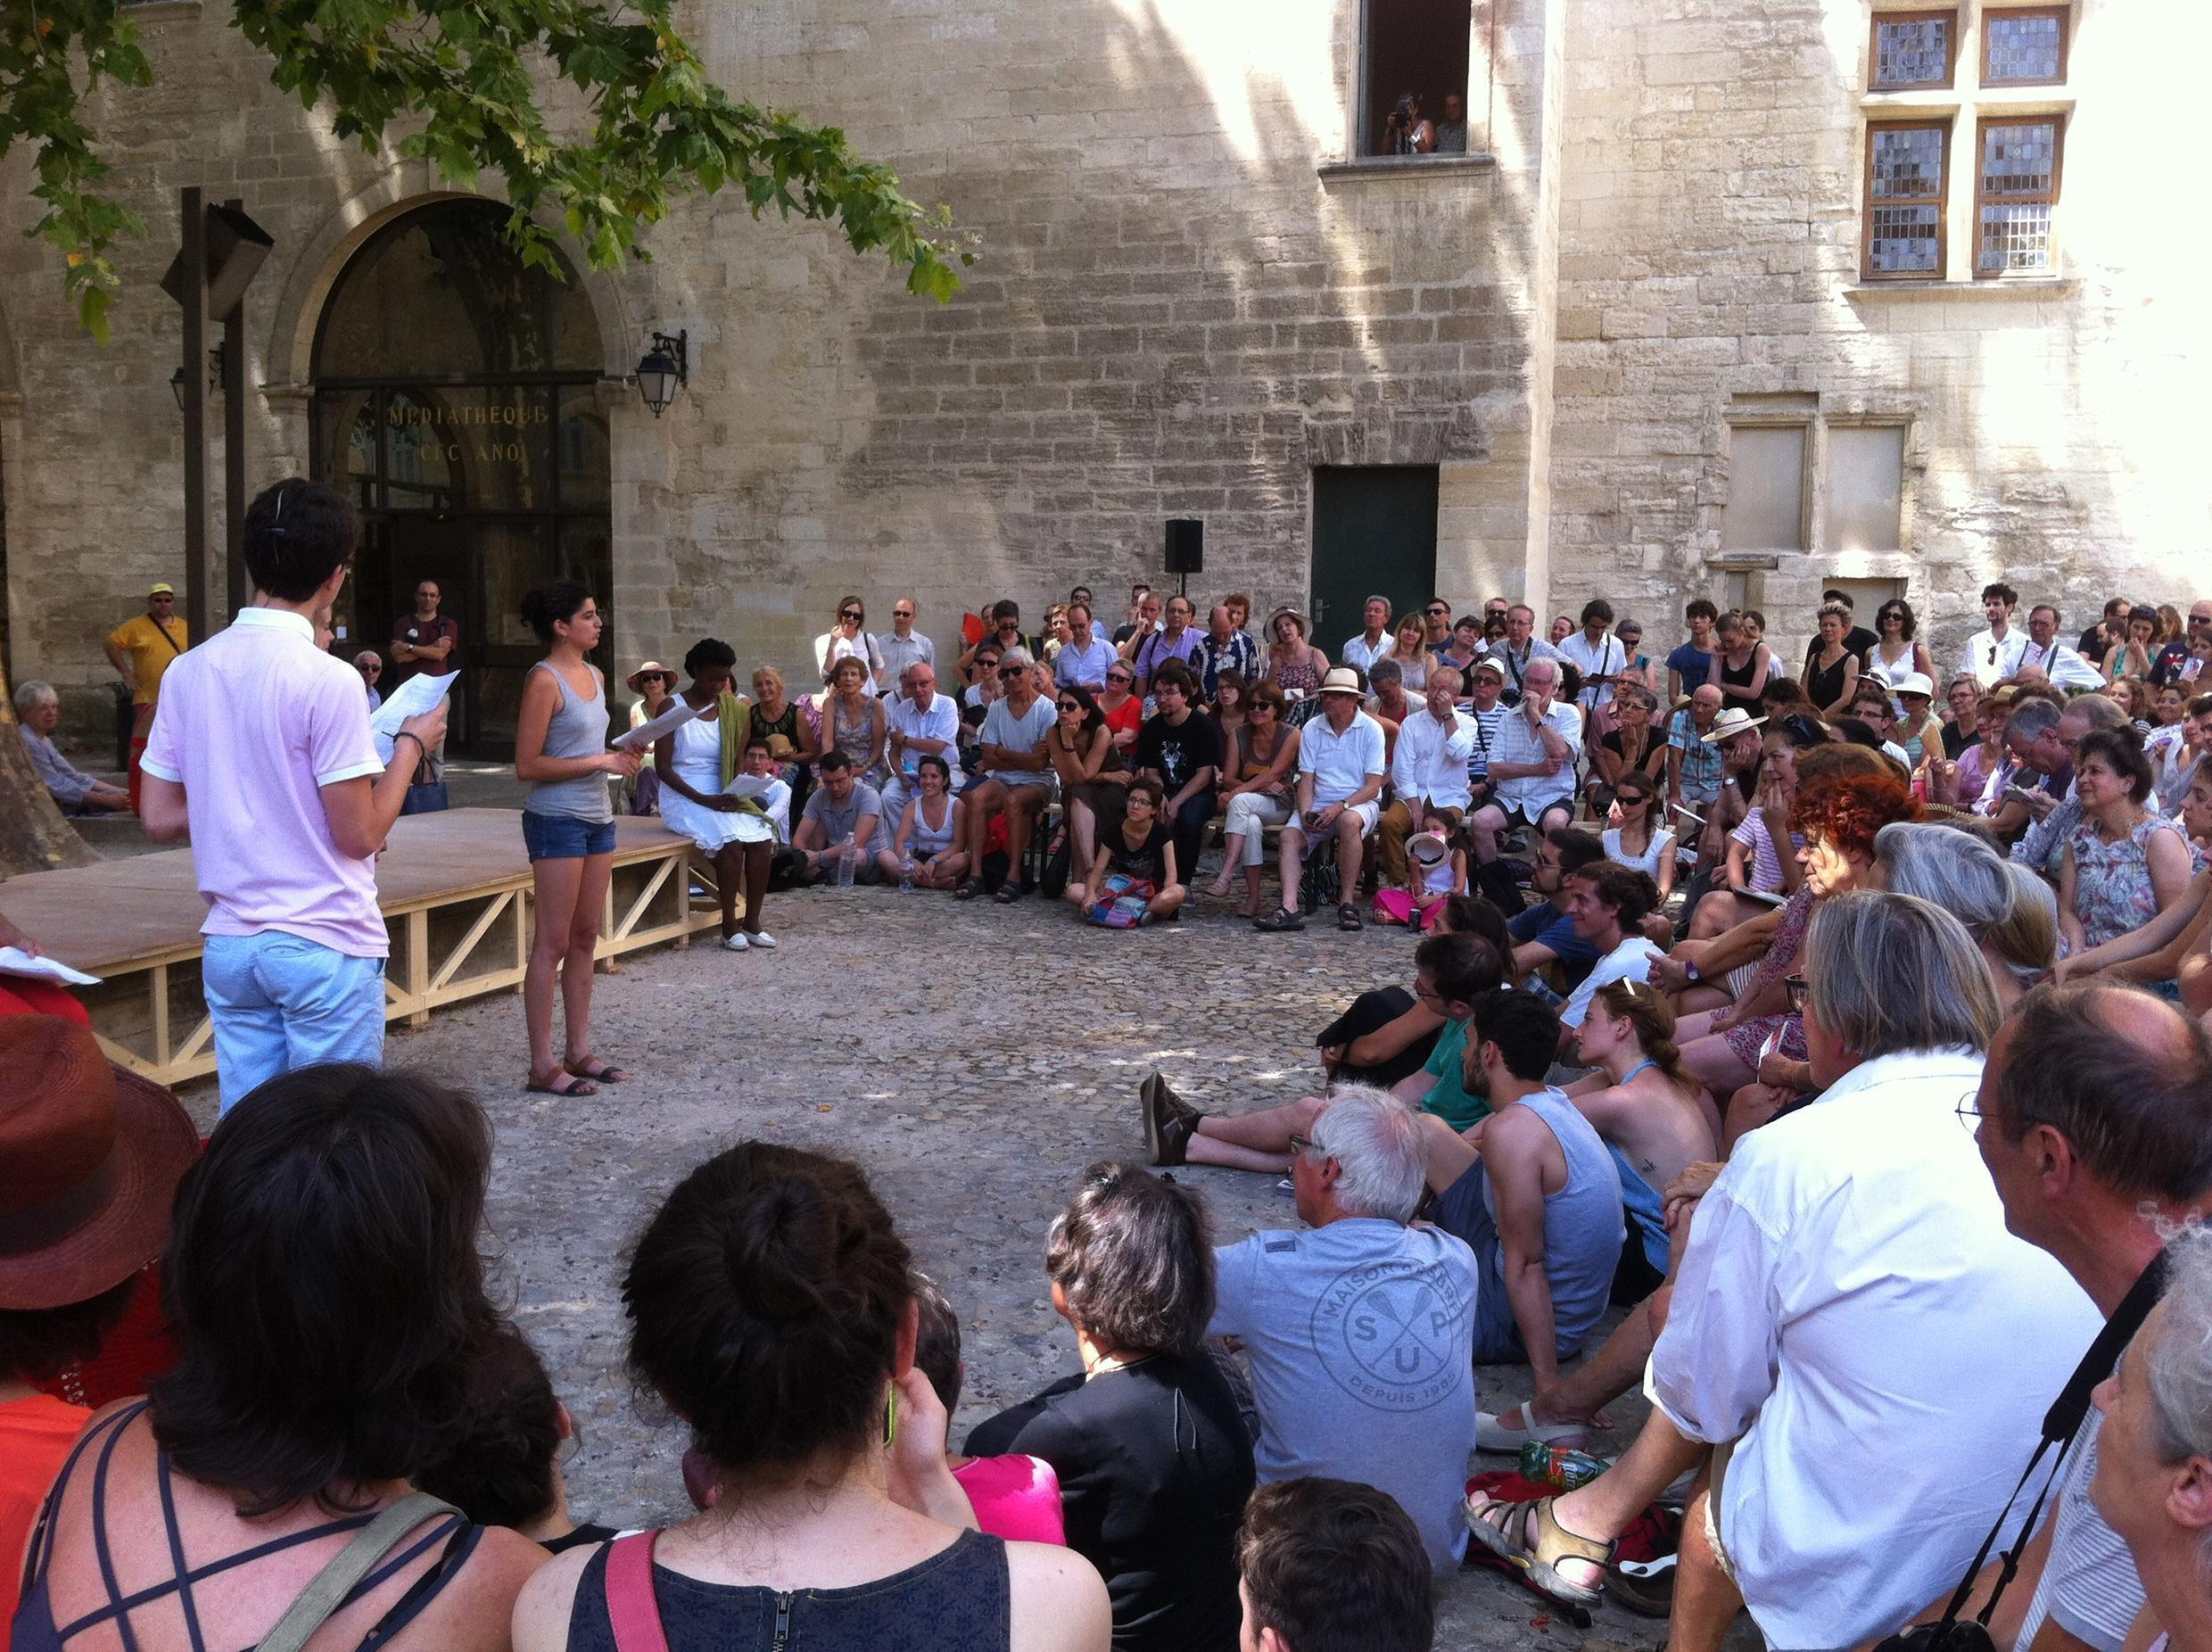 The Avignon theatre festival, which attracts 700,000 thousand visitors, is cancelled this year because of the coronavirus pandemic.